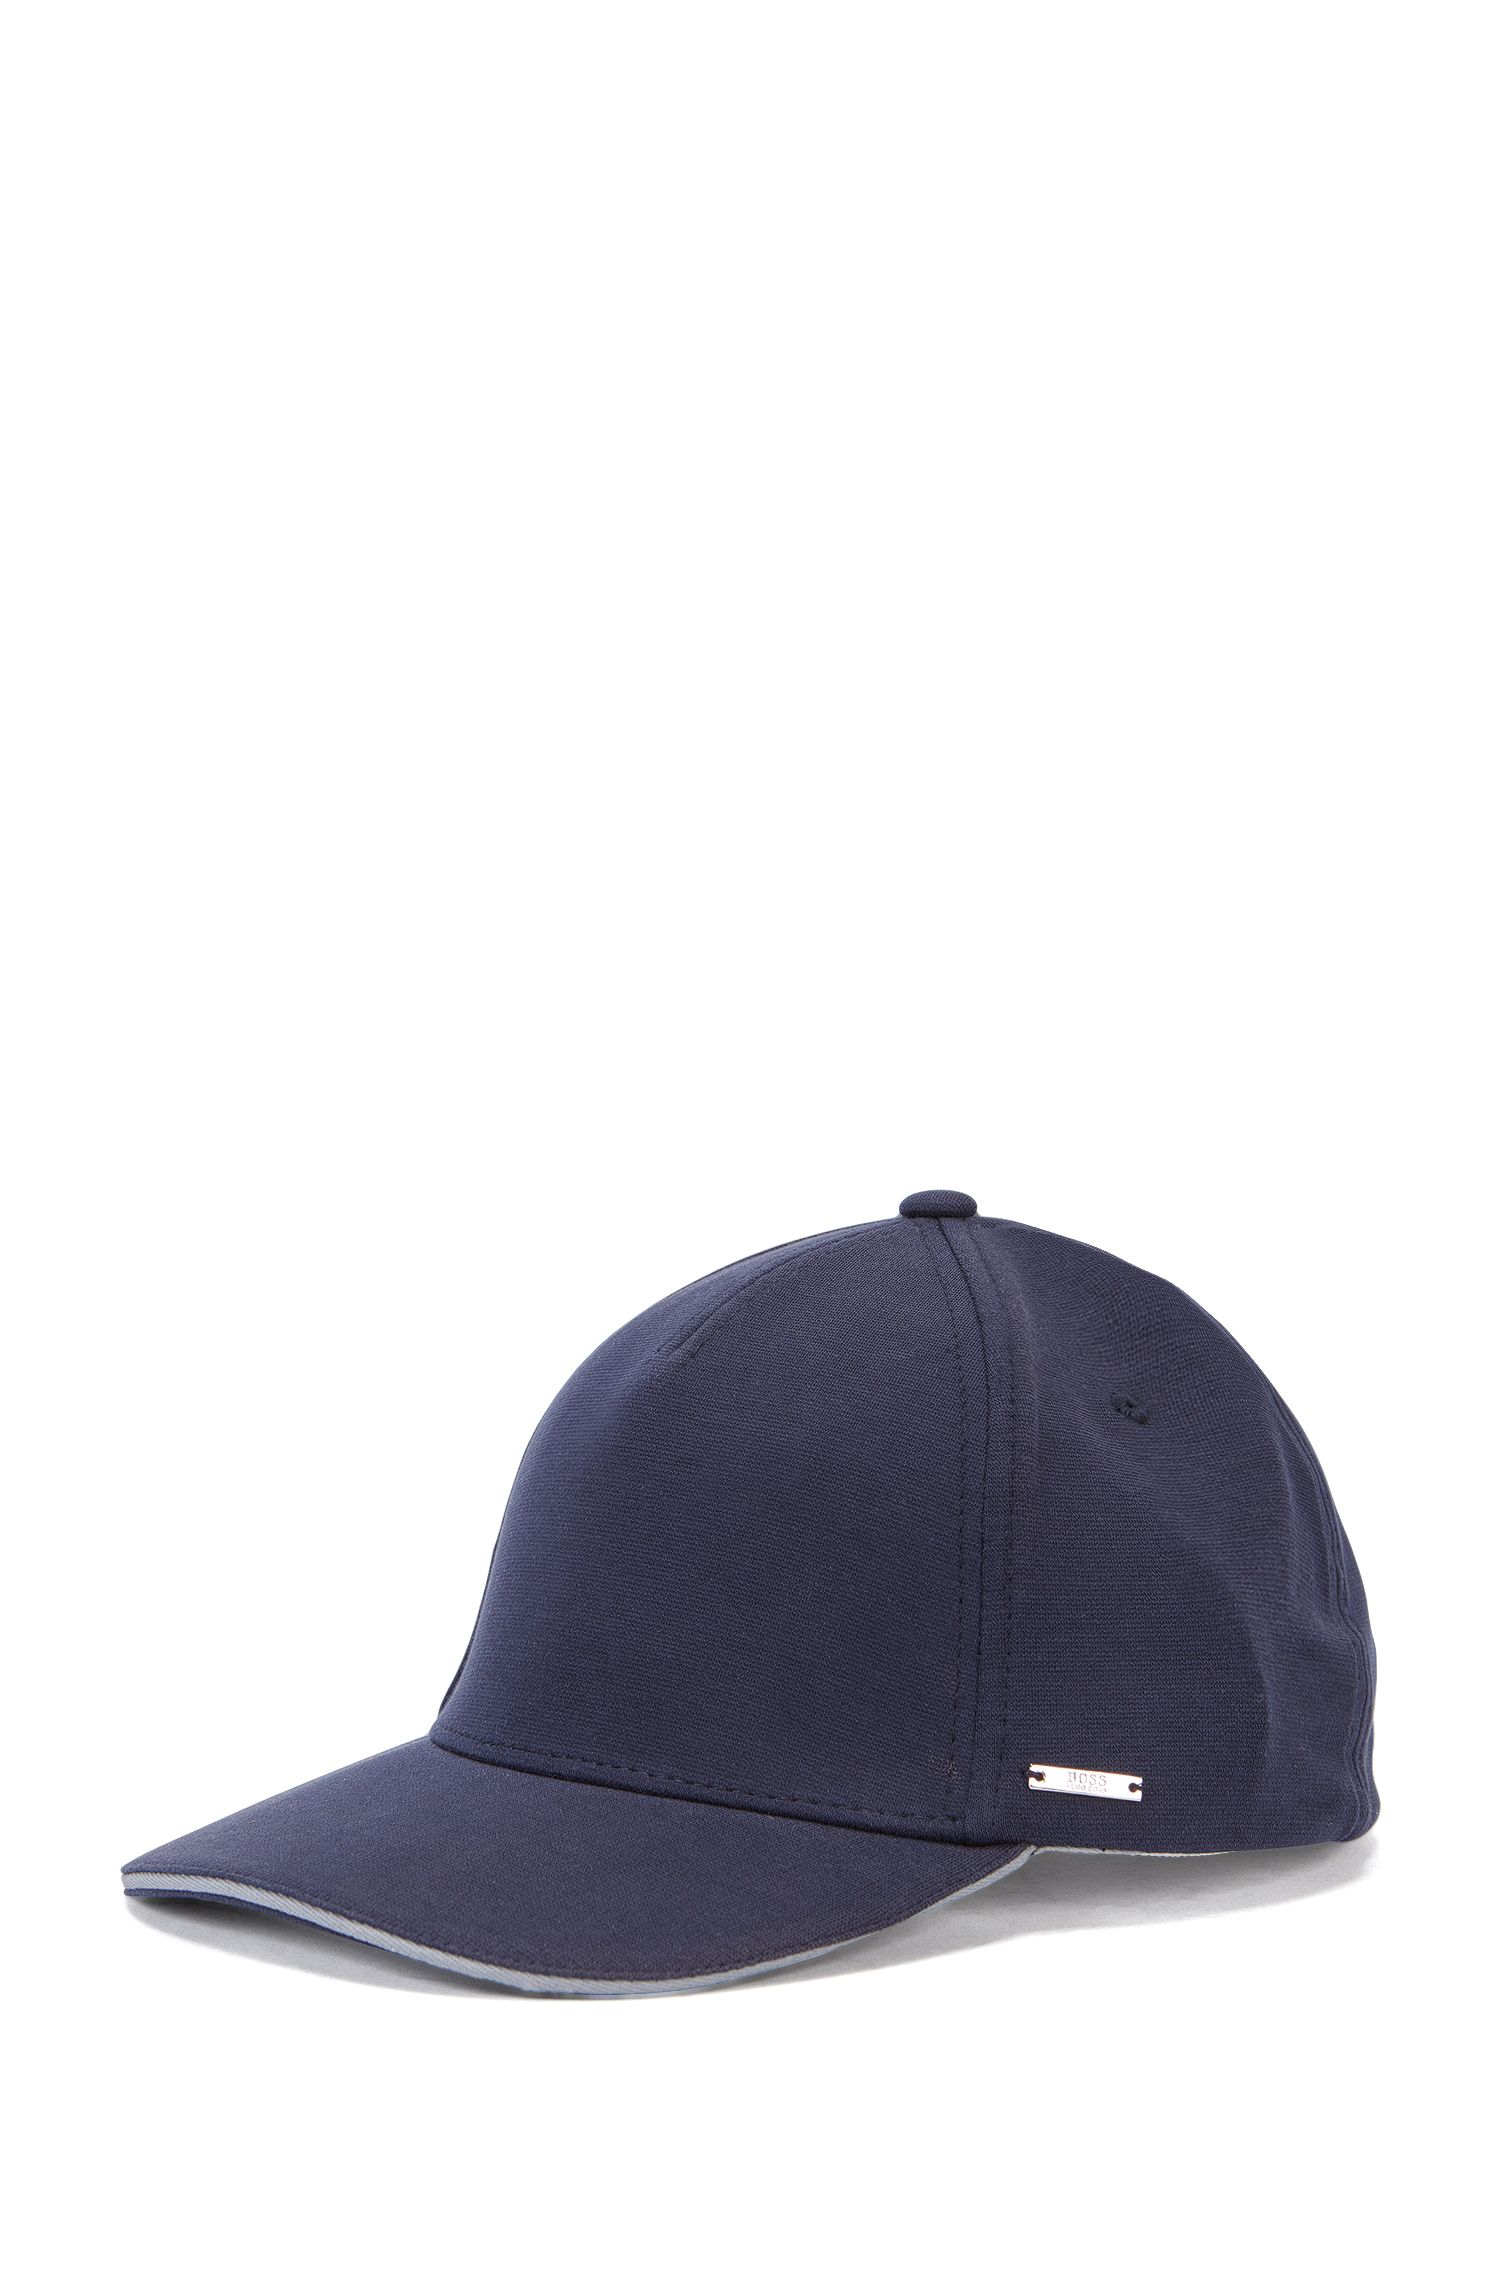 Cotton Blend Twill Cap | Serios, Dark Blue